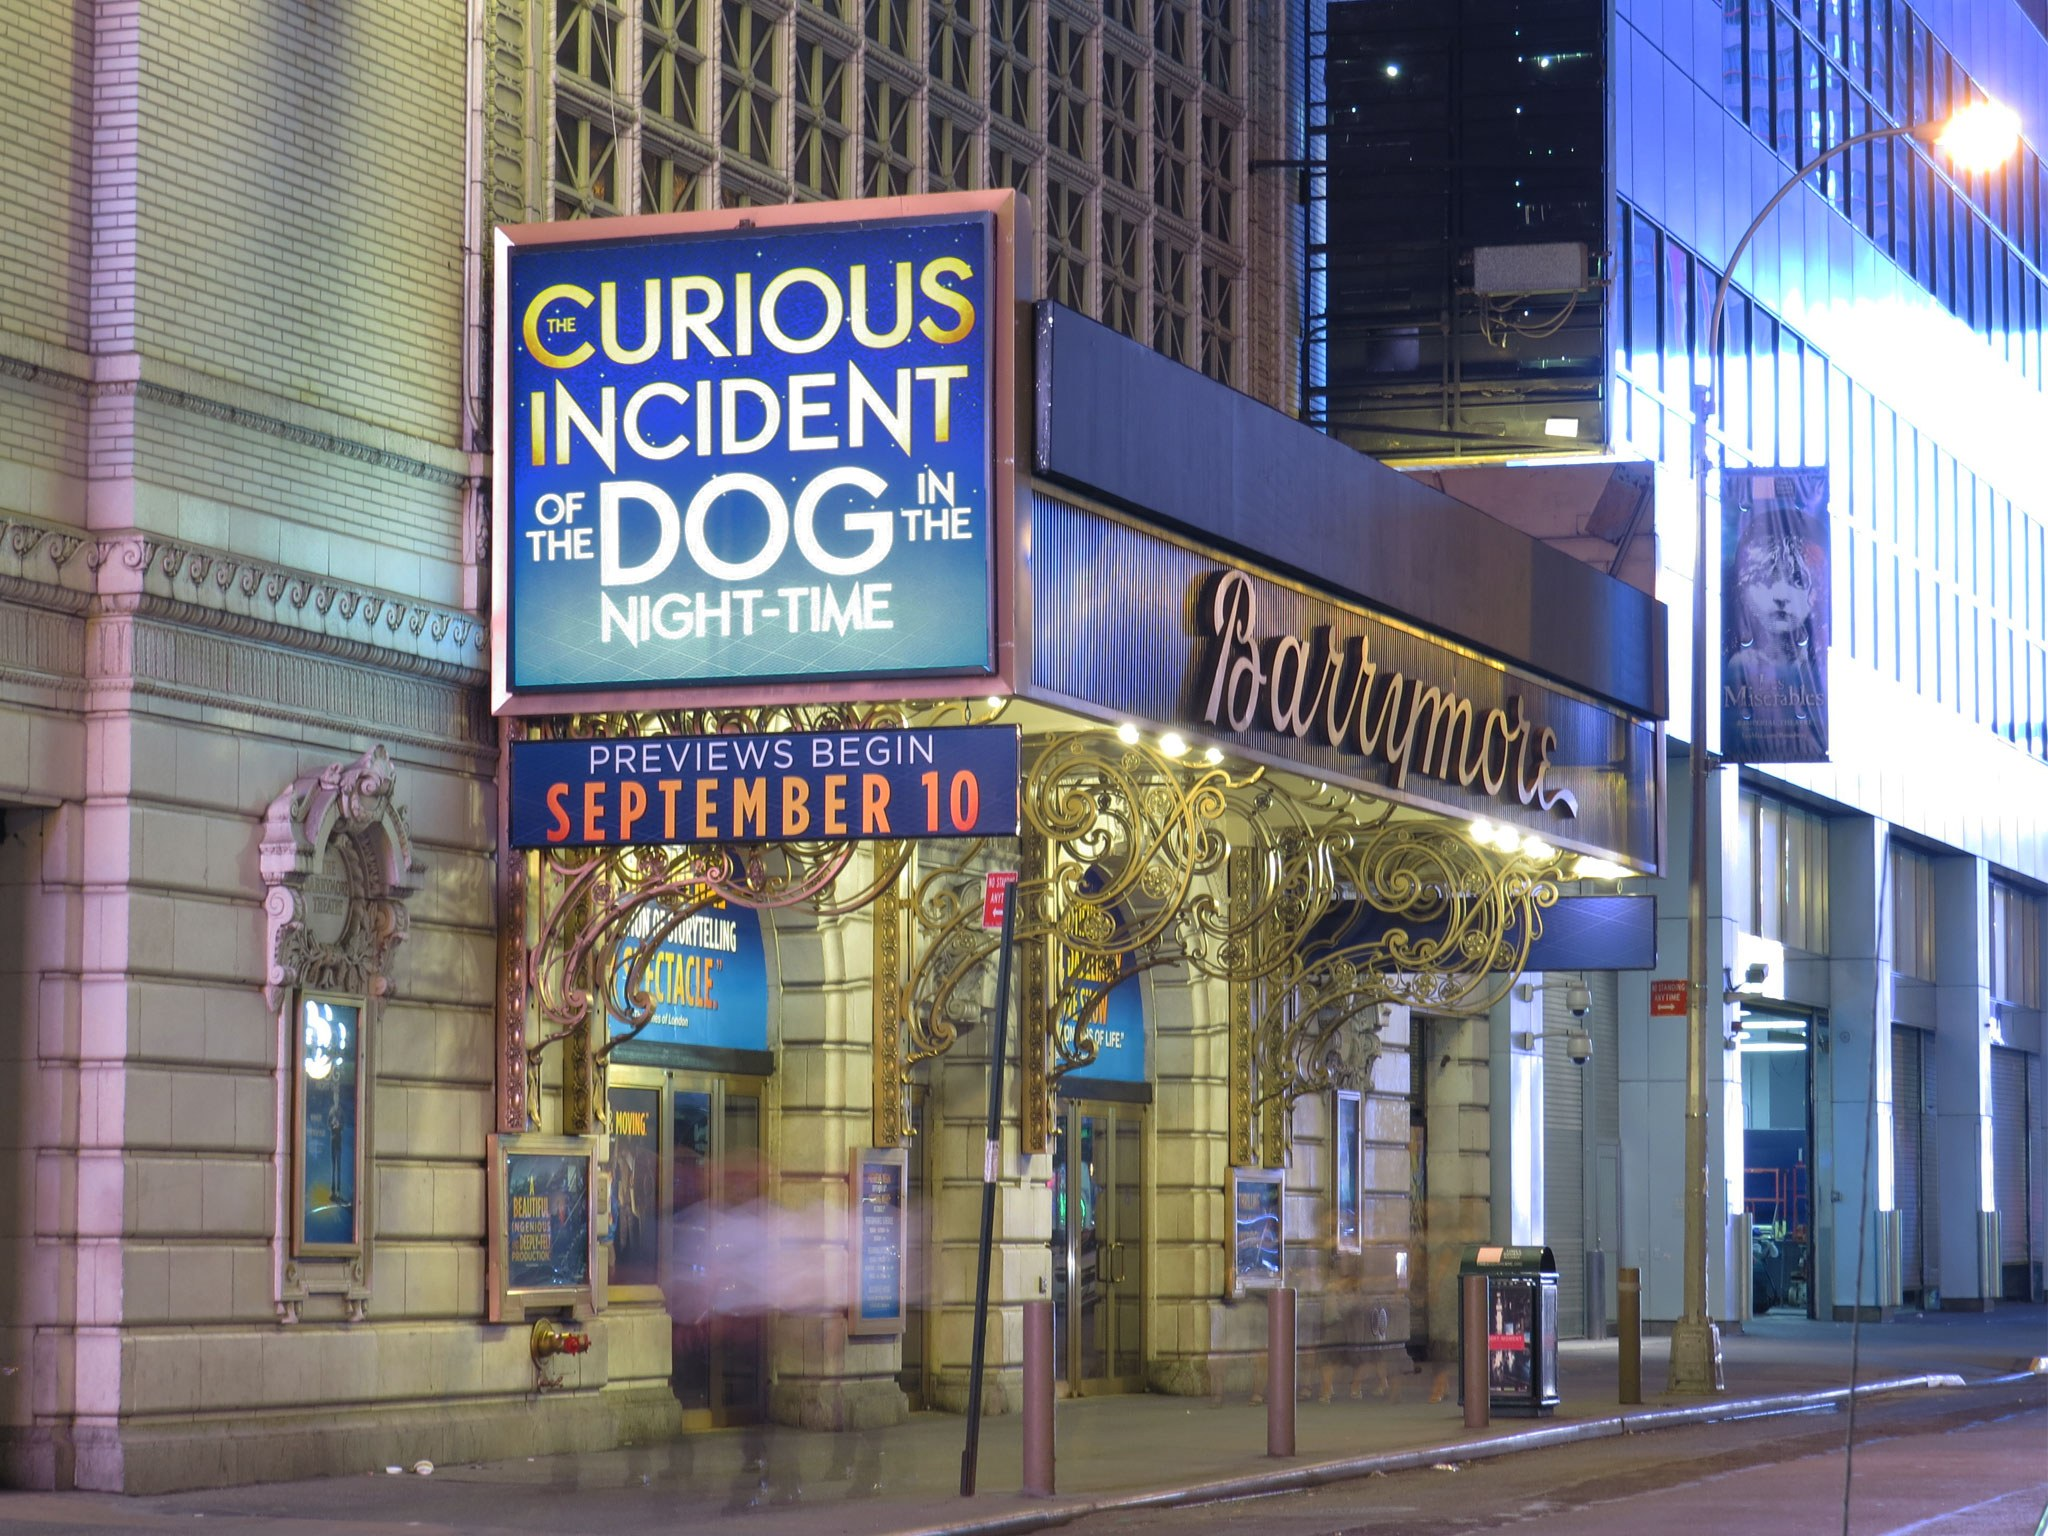 The Curious Incident of the Dog in the Night-Time Marquee